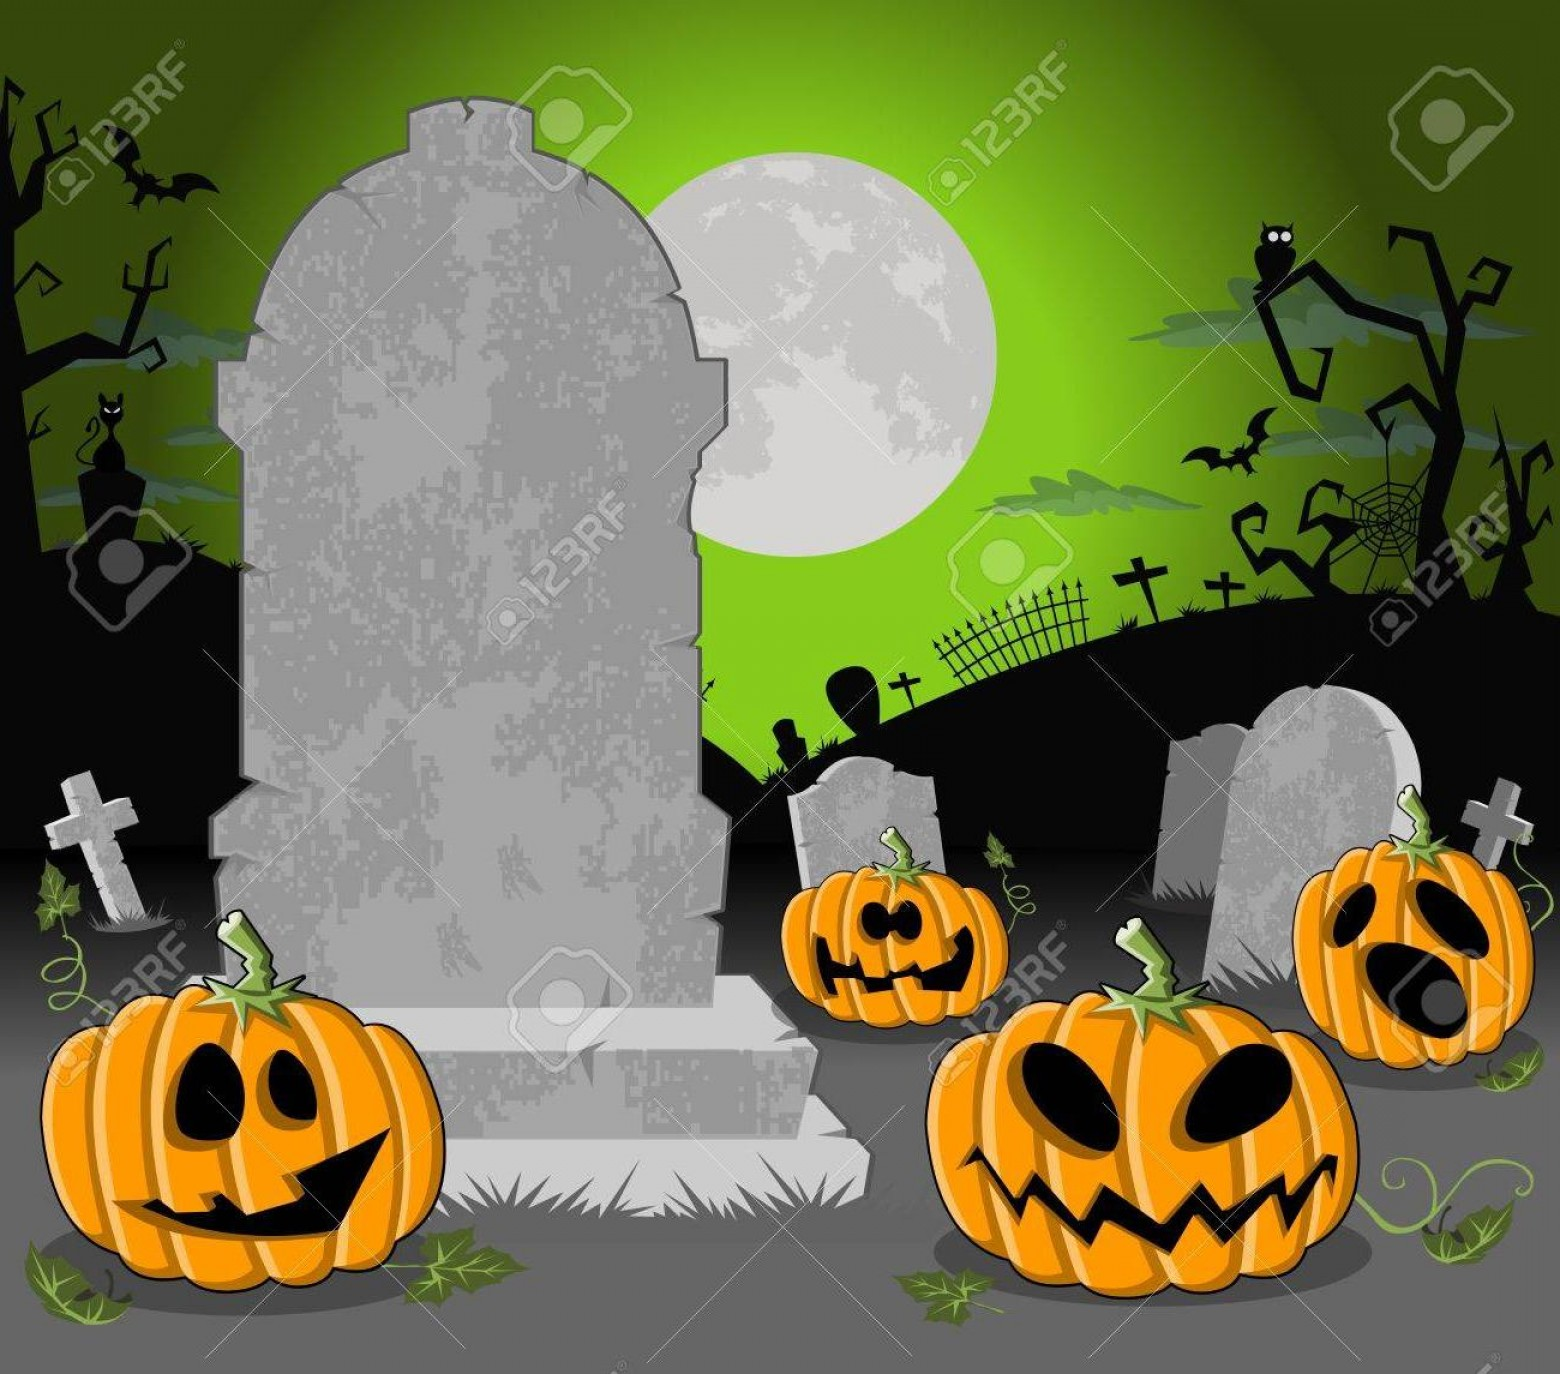 Vector Halloween Silhouettes Pumpkin With Glases Best Halloween Cemetery Background